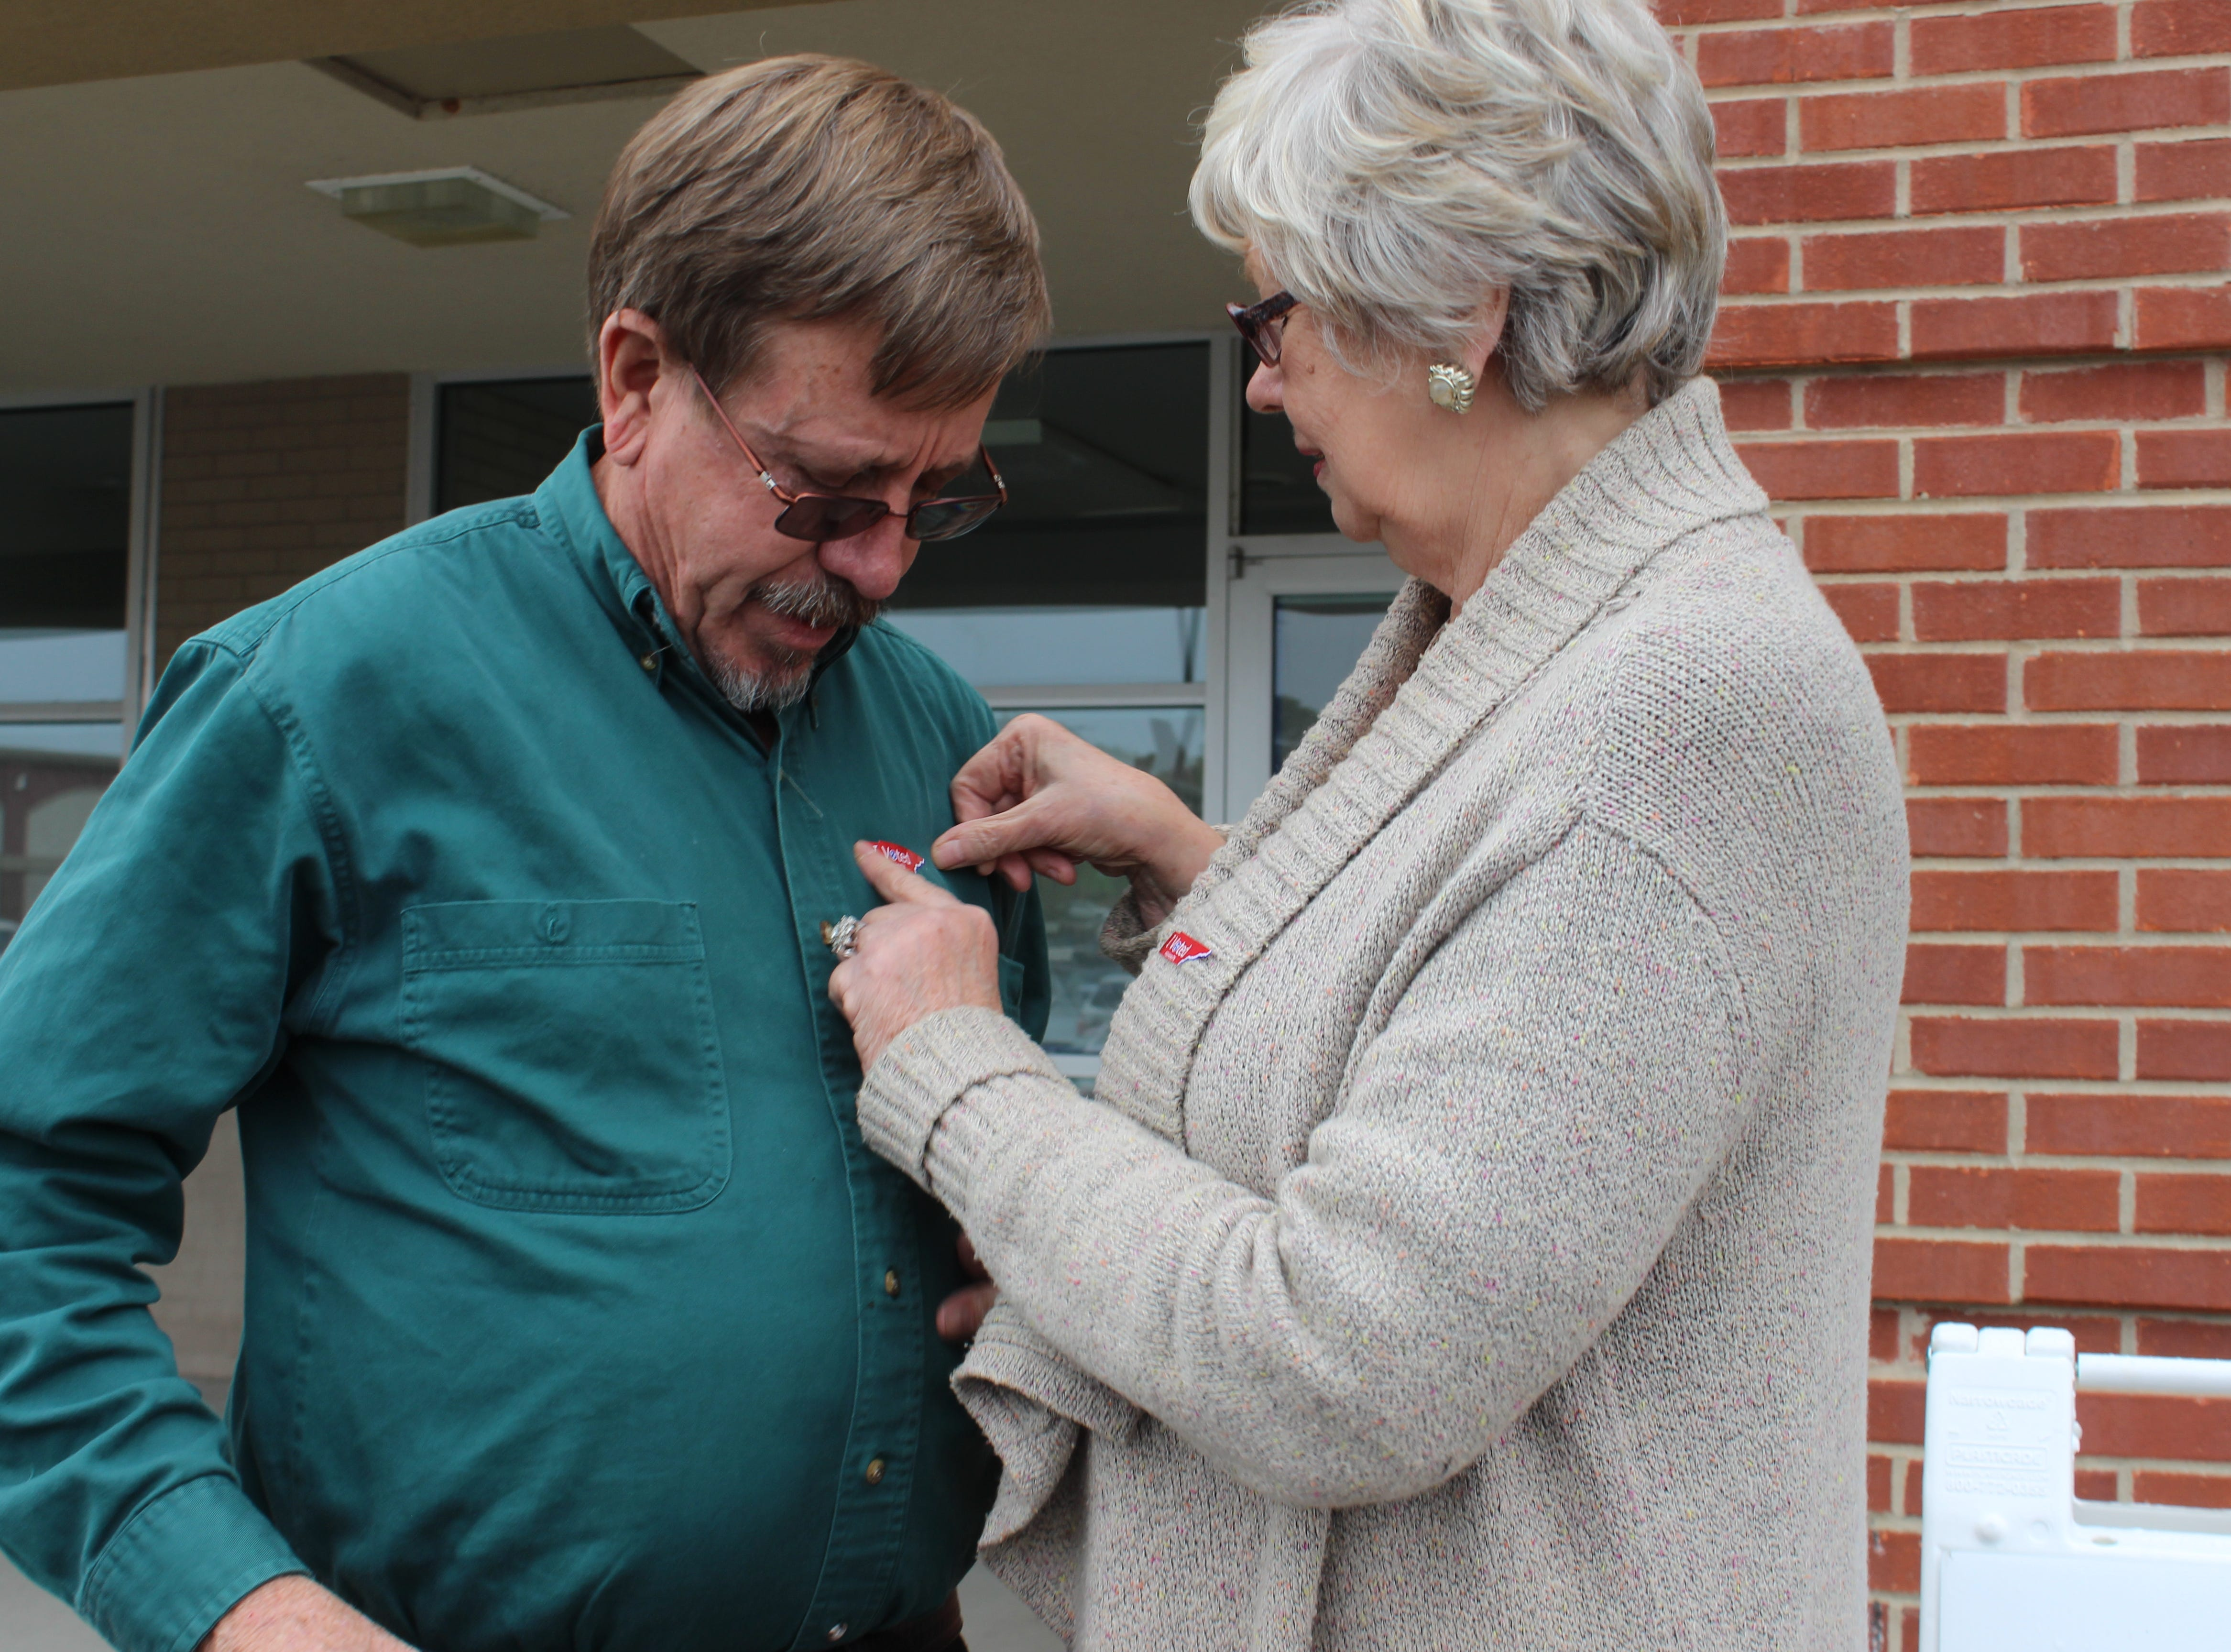 Dr. Larry Harris and Dr. Carmen Reagan affix their voter stickers after casting early ballots in Montgomery County.